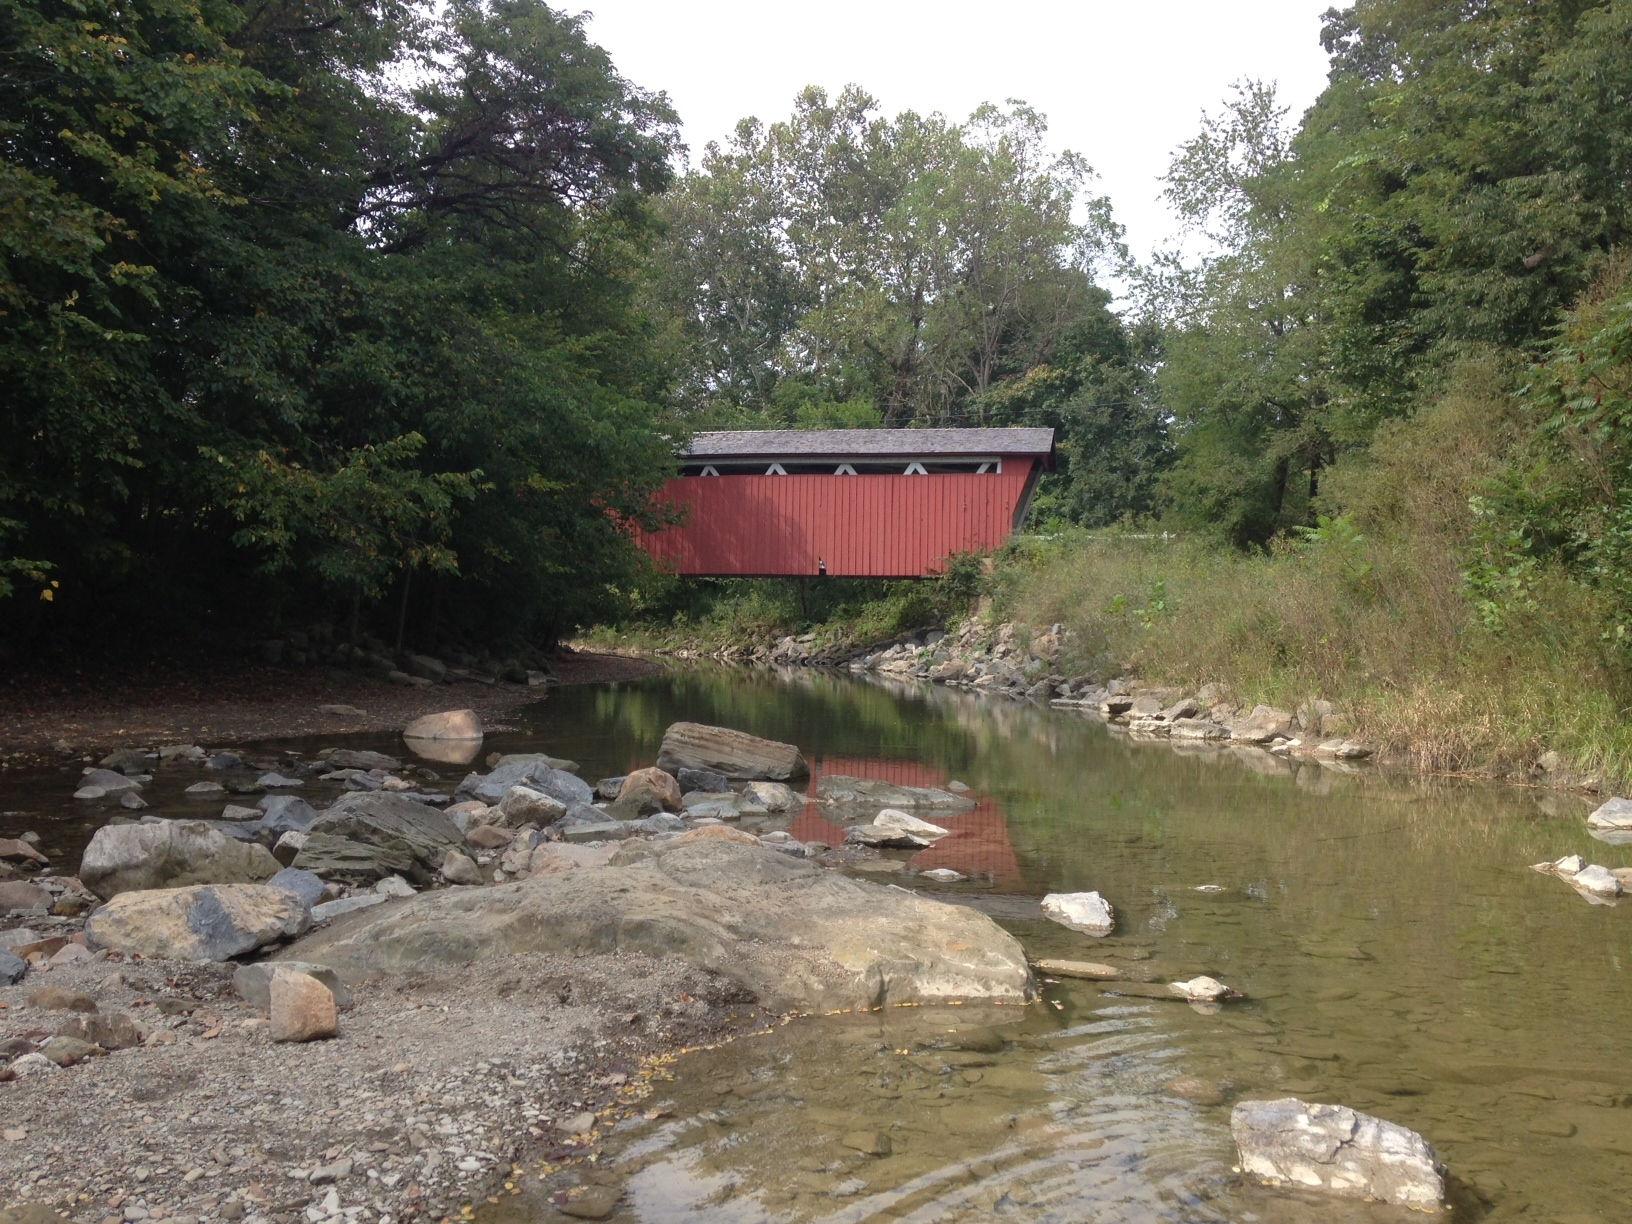 rocks and water in foreground, red covered bridge in background.